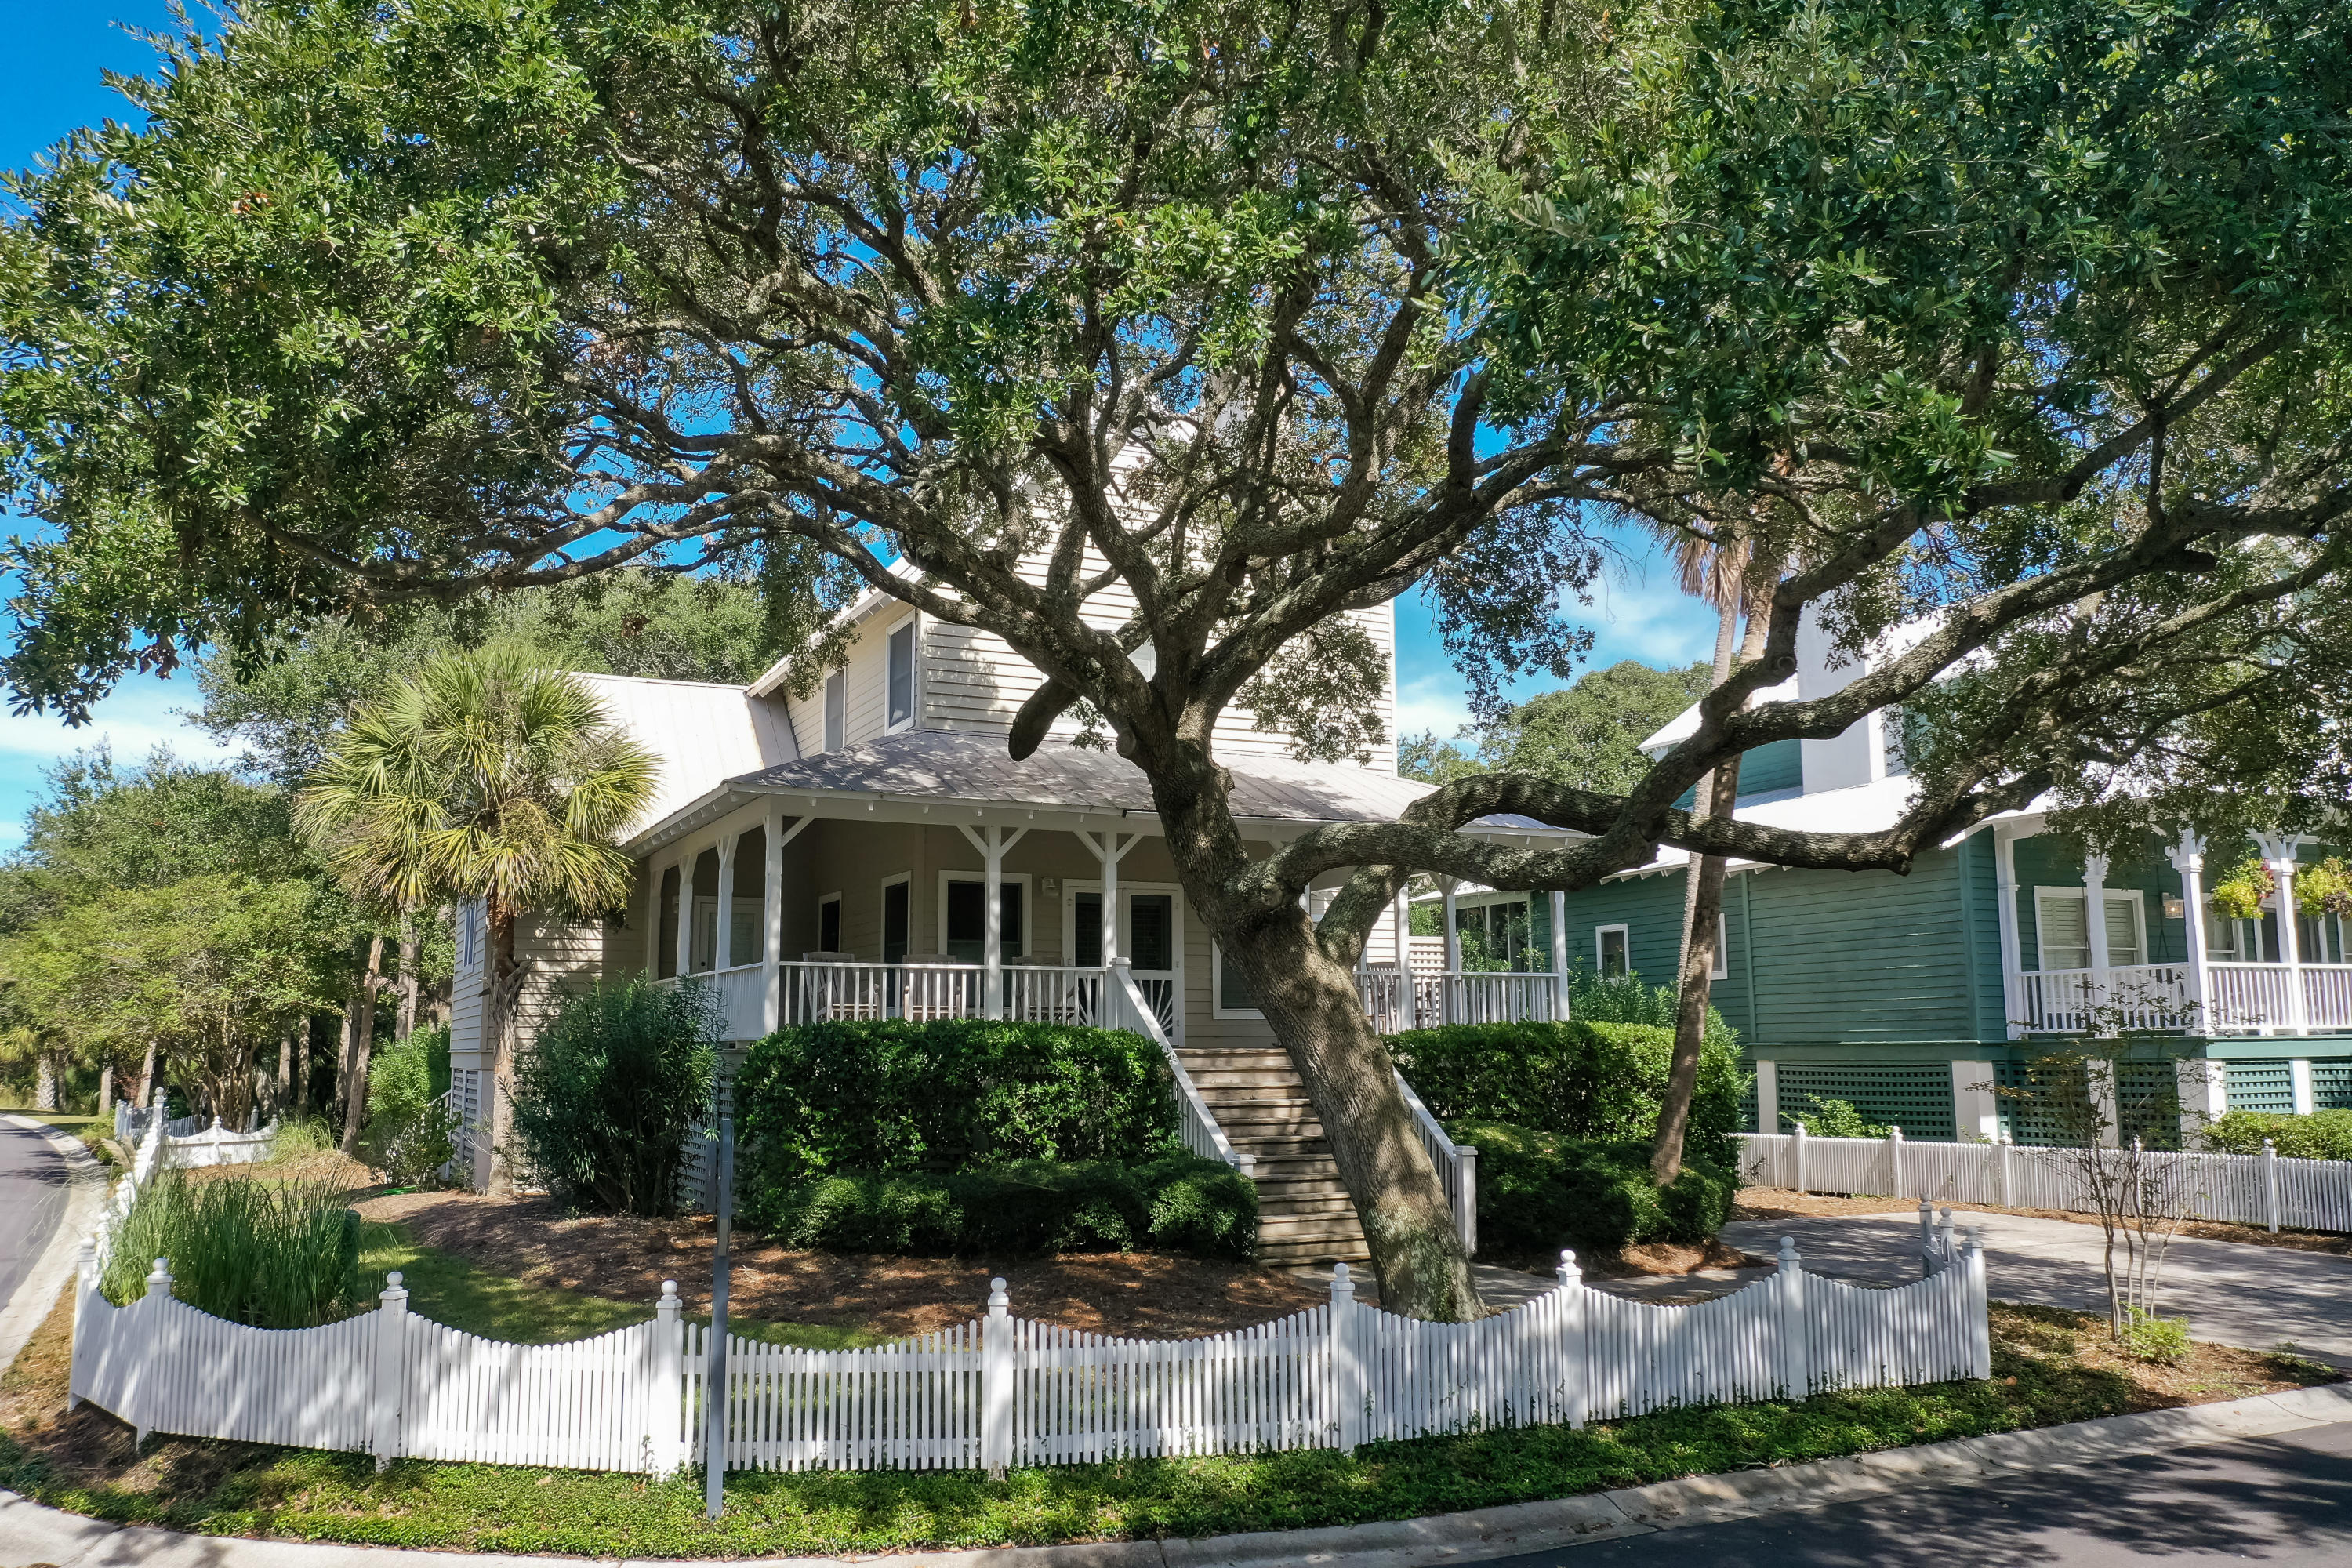 Kiawah Island Homes For Sale - 24 Atlantic Beach, Kiawah Island, SC - 28